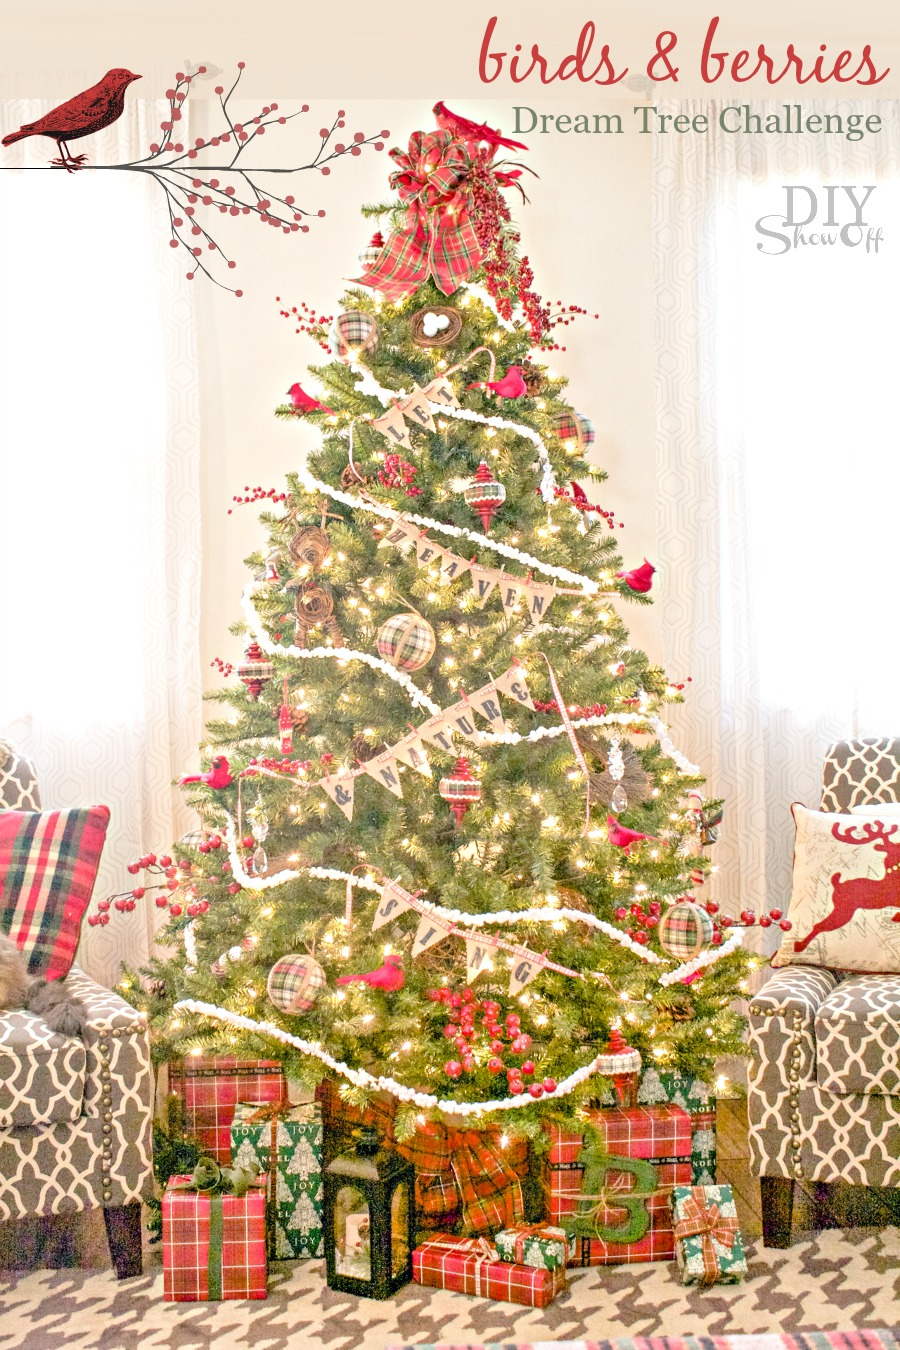 the michaels dream tree challenge mission is to bring you some holiday inspiration in preparation for seasonal decorating its not too early to start